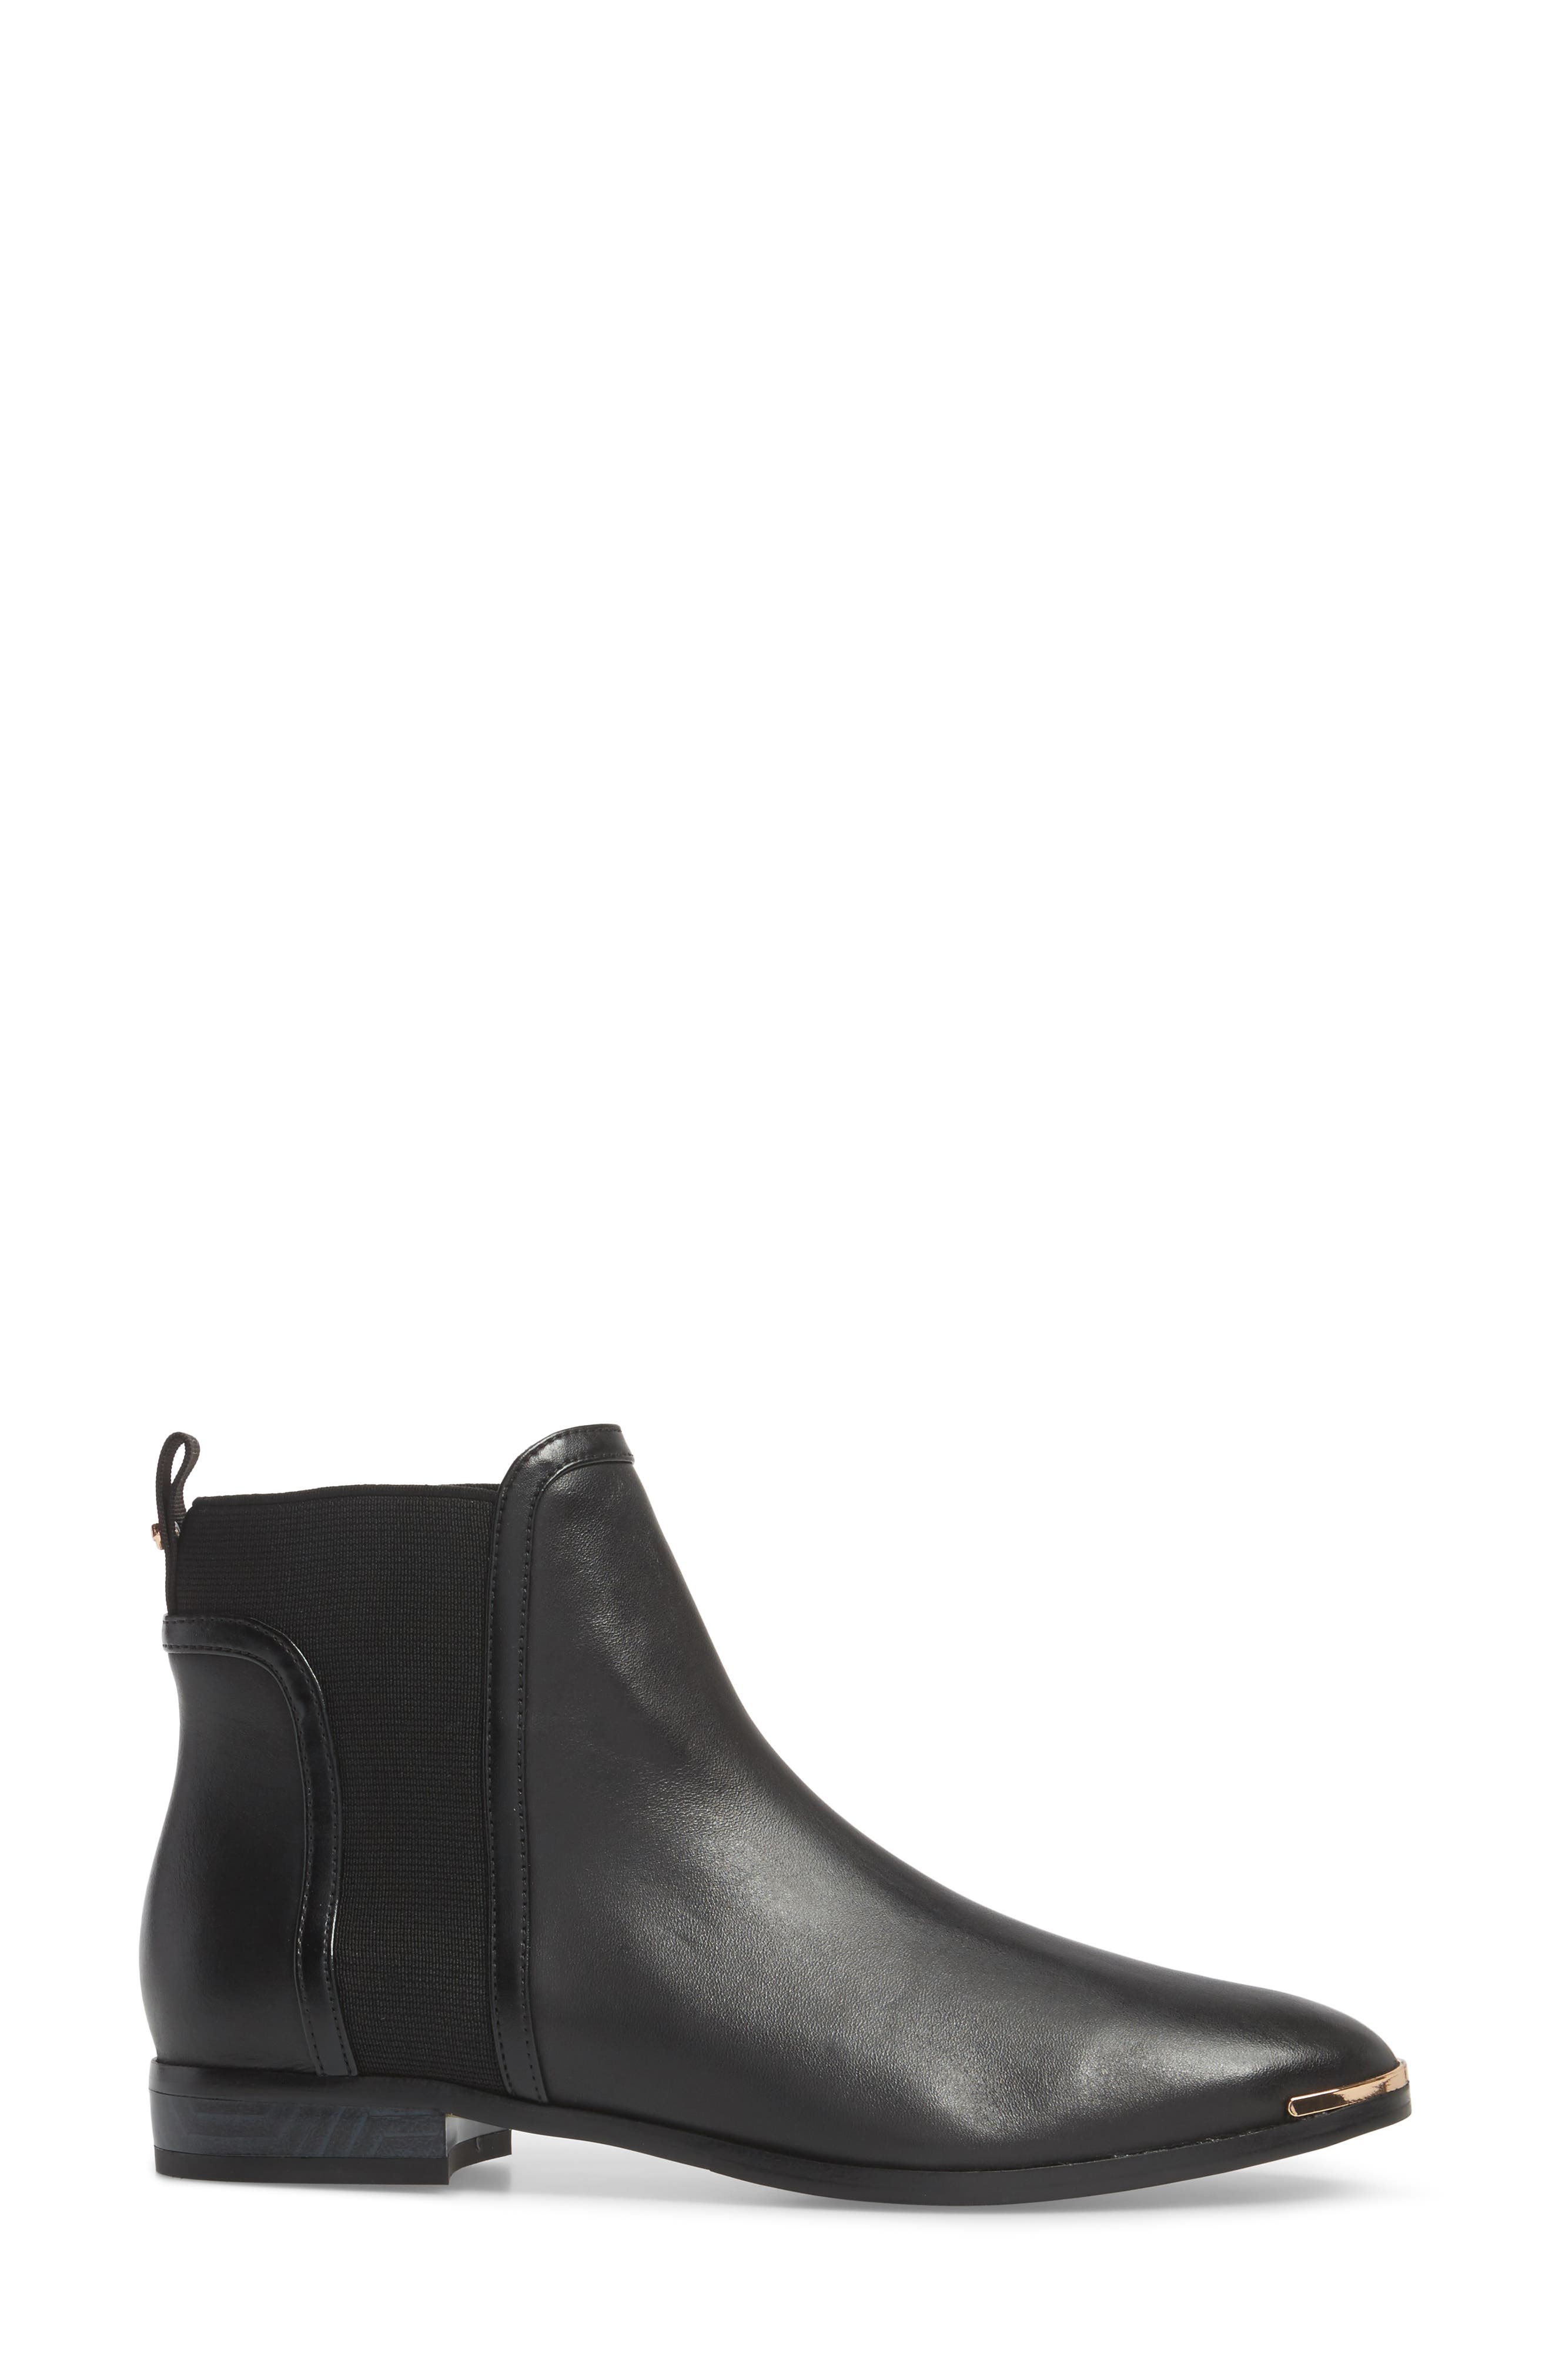 Kerei Chelsea Boot,                             Alternate thumbnail 3, color,                             001